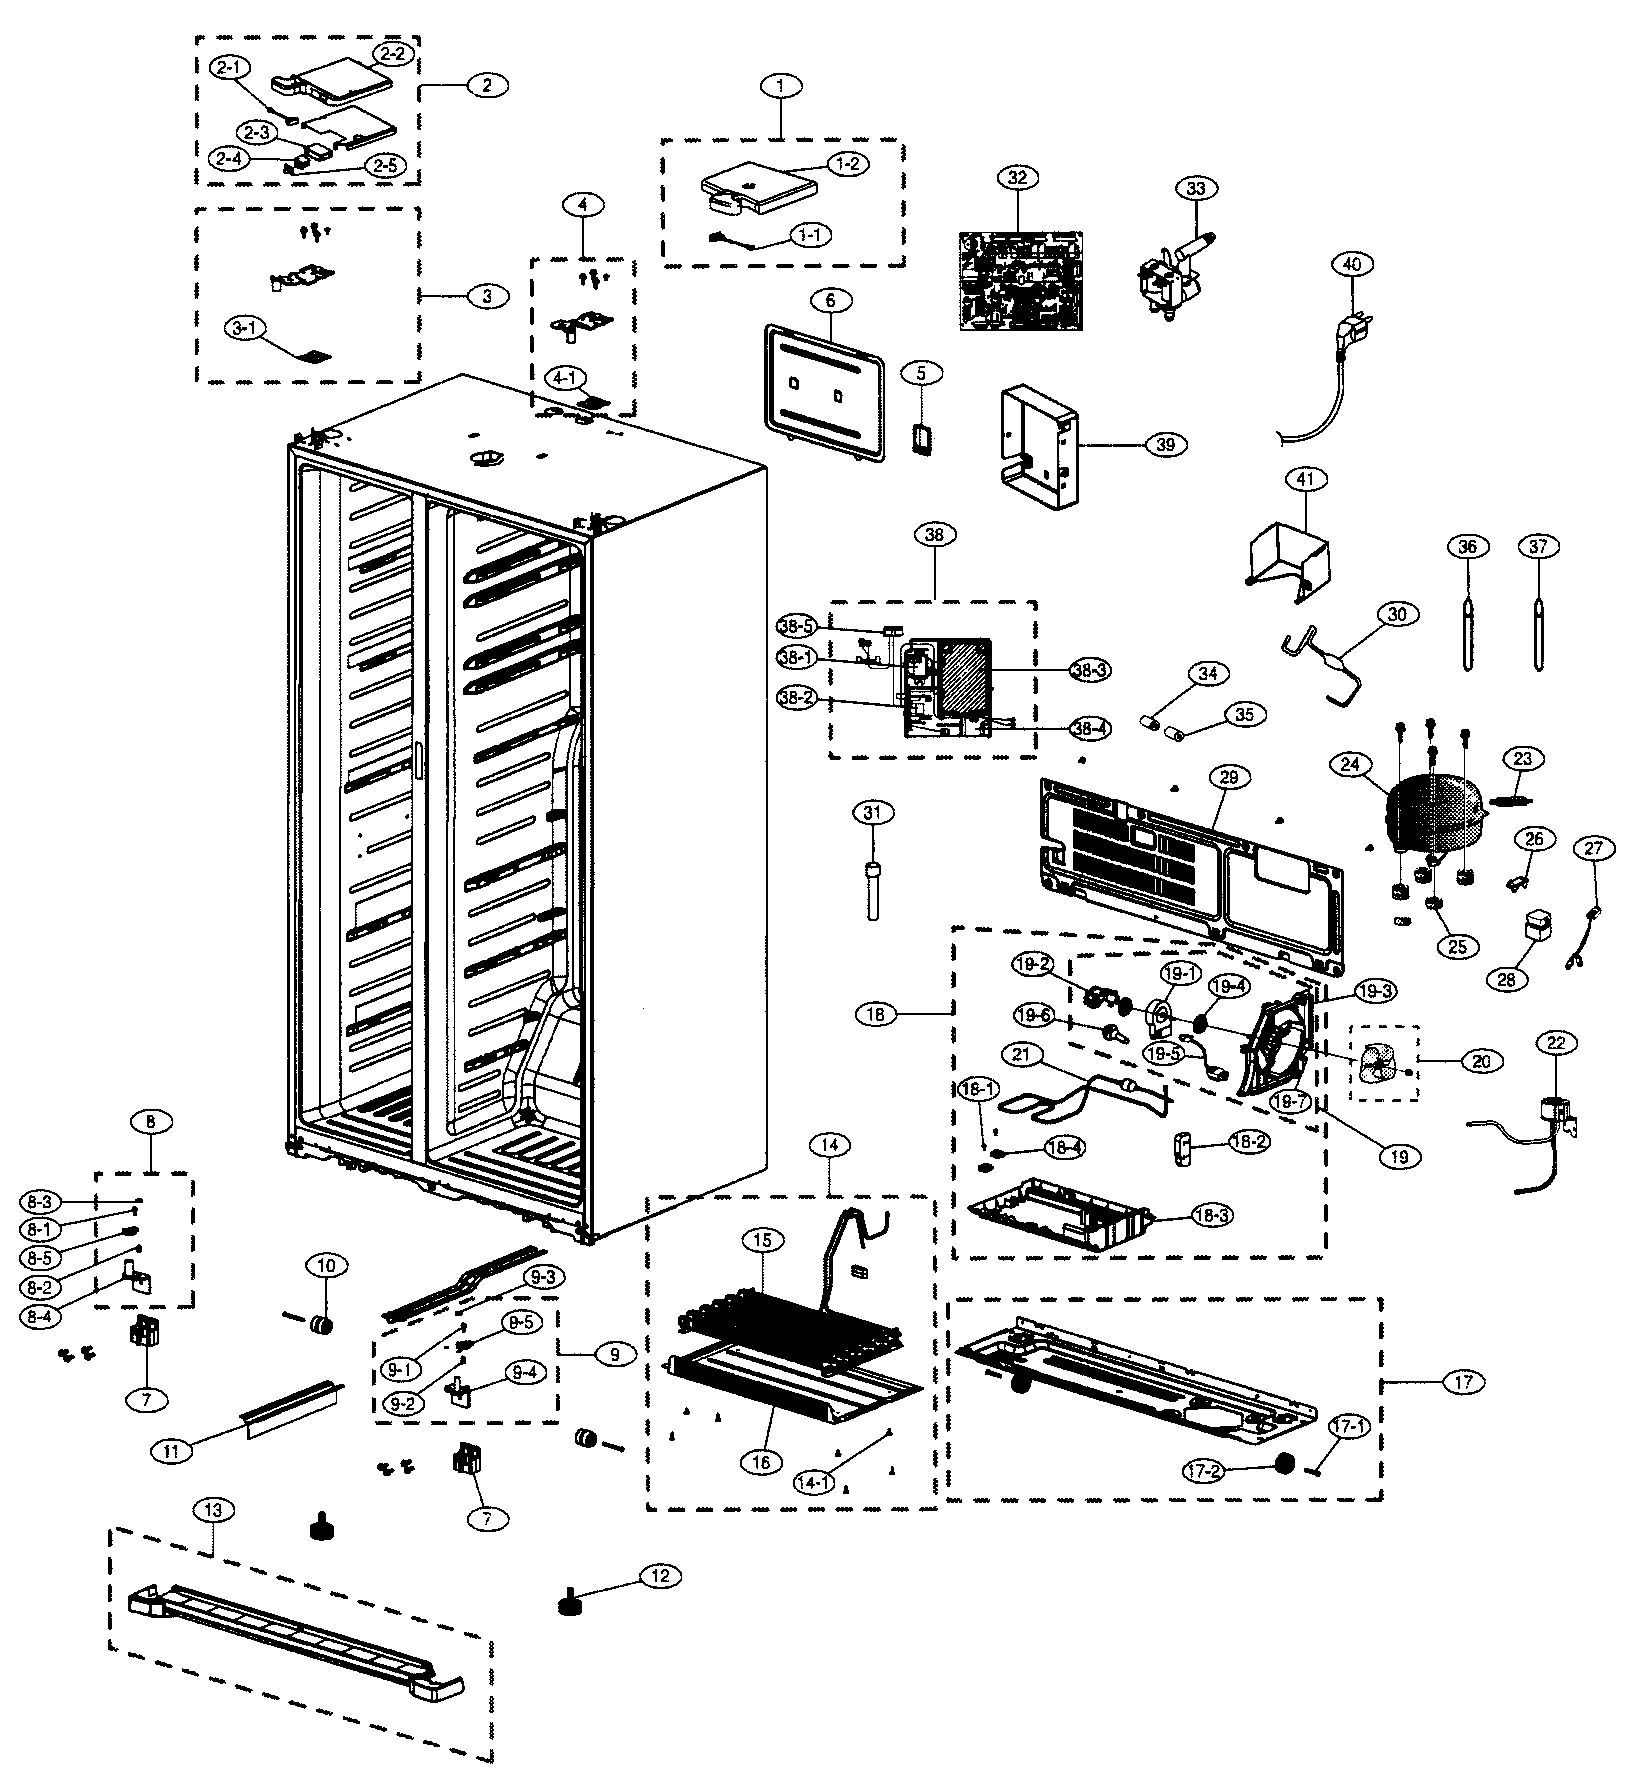 CABINET Diagram & Parts List for Model 40141009900 Kenmore